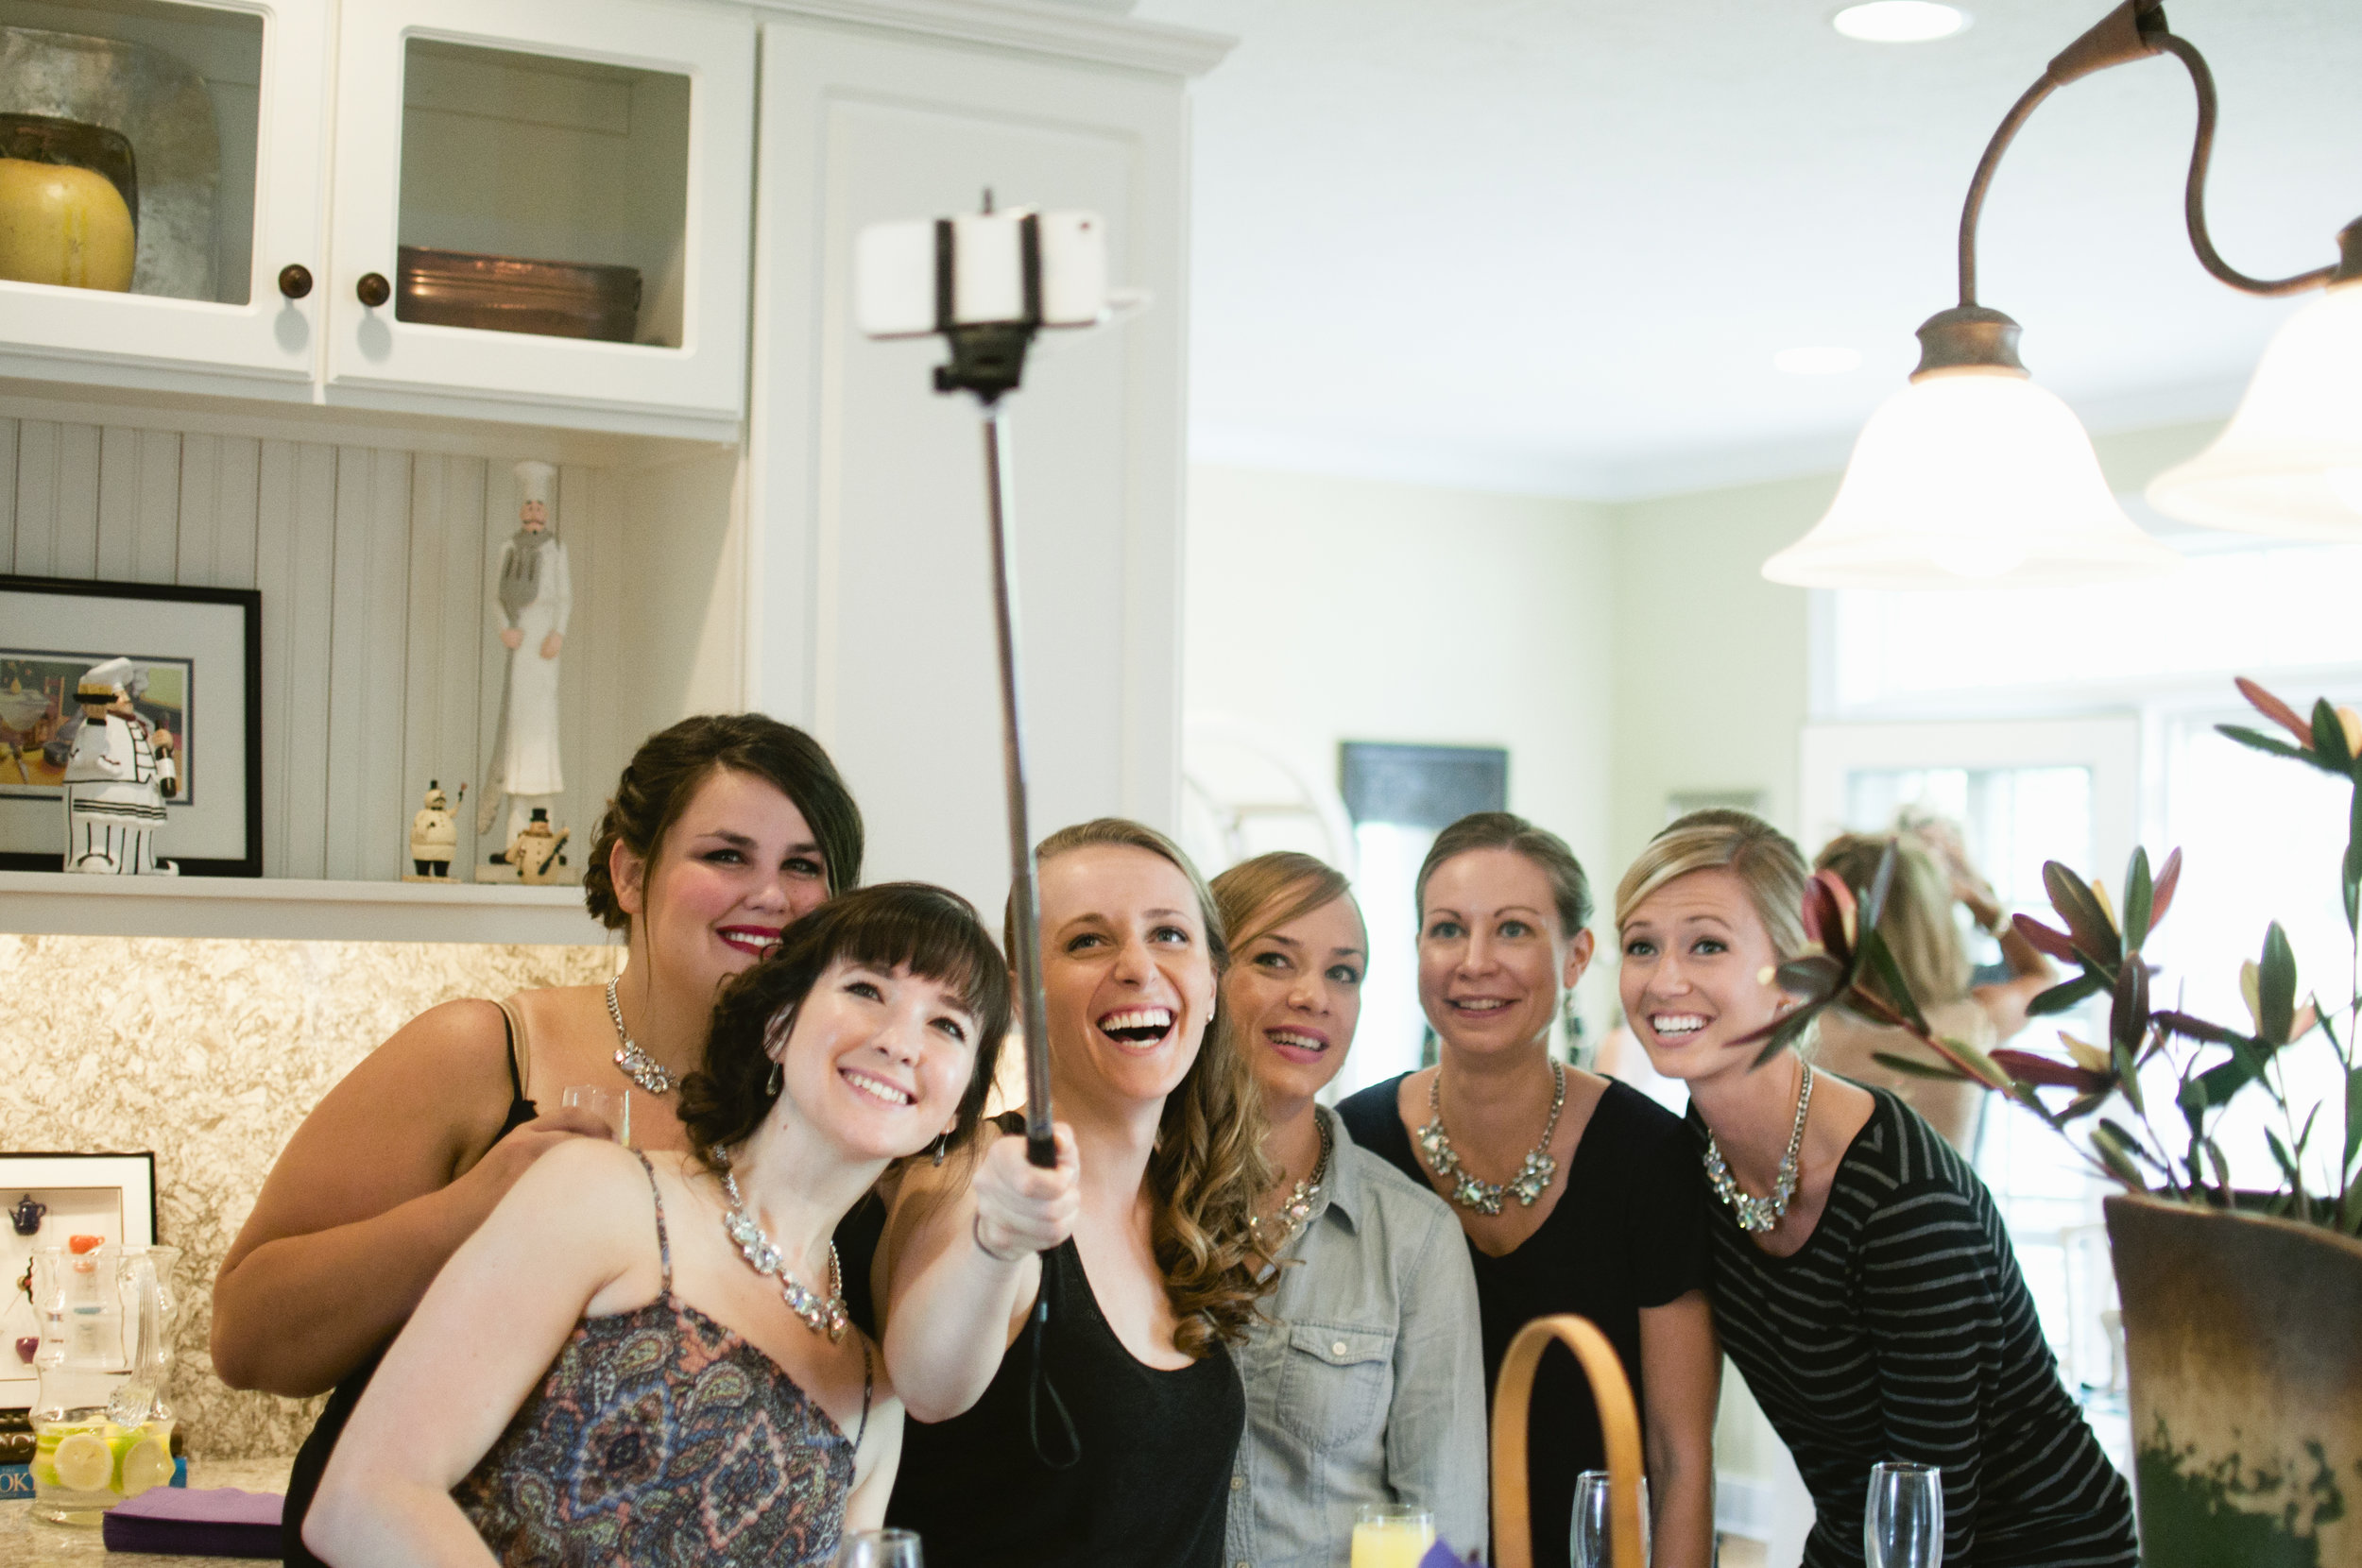 Bridal Party getting group photo of bridesmaids with a selfie stick